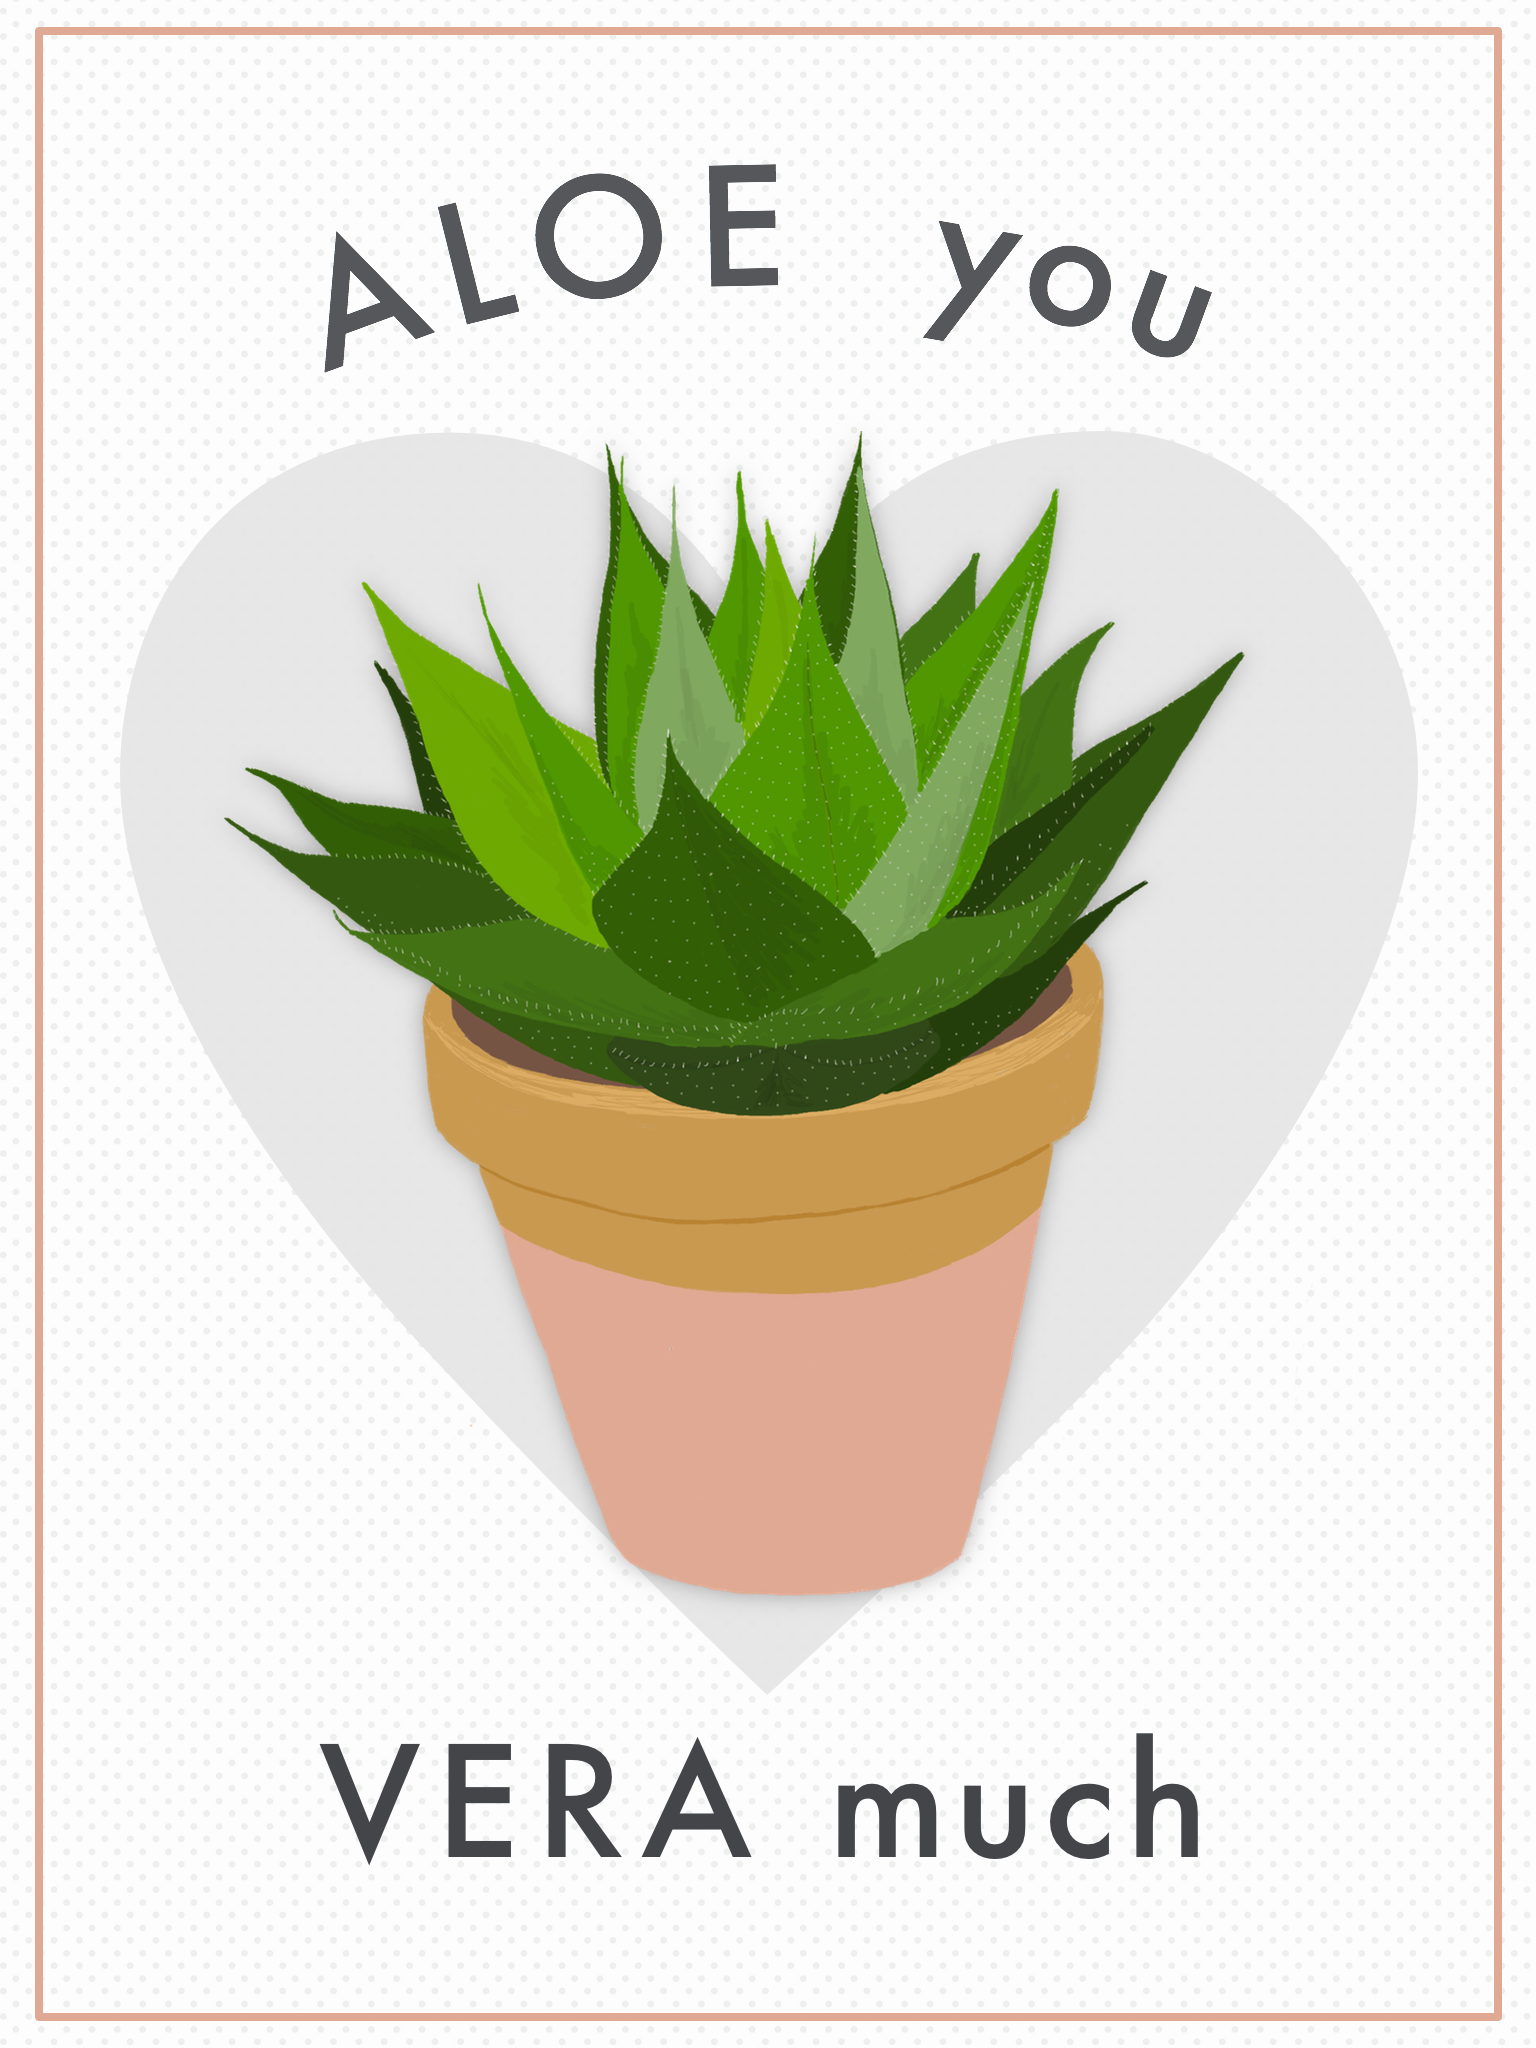 aloe you vera much.png